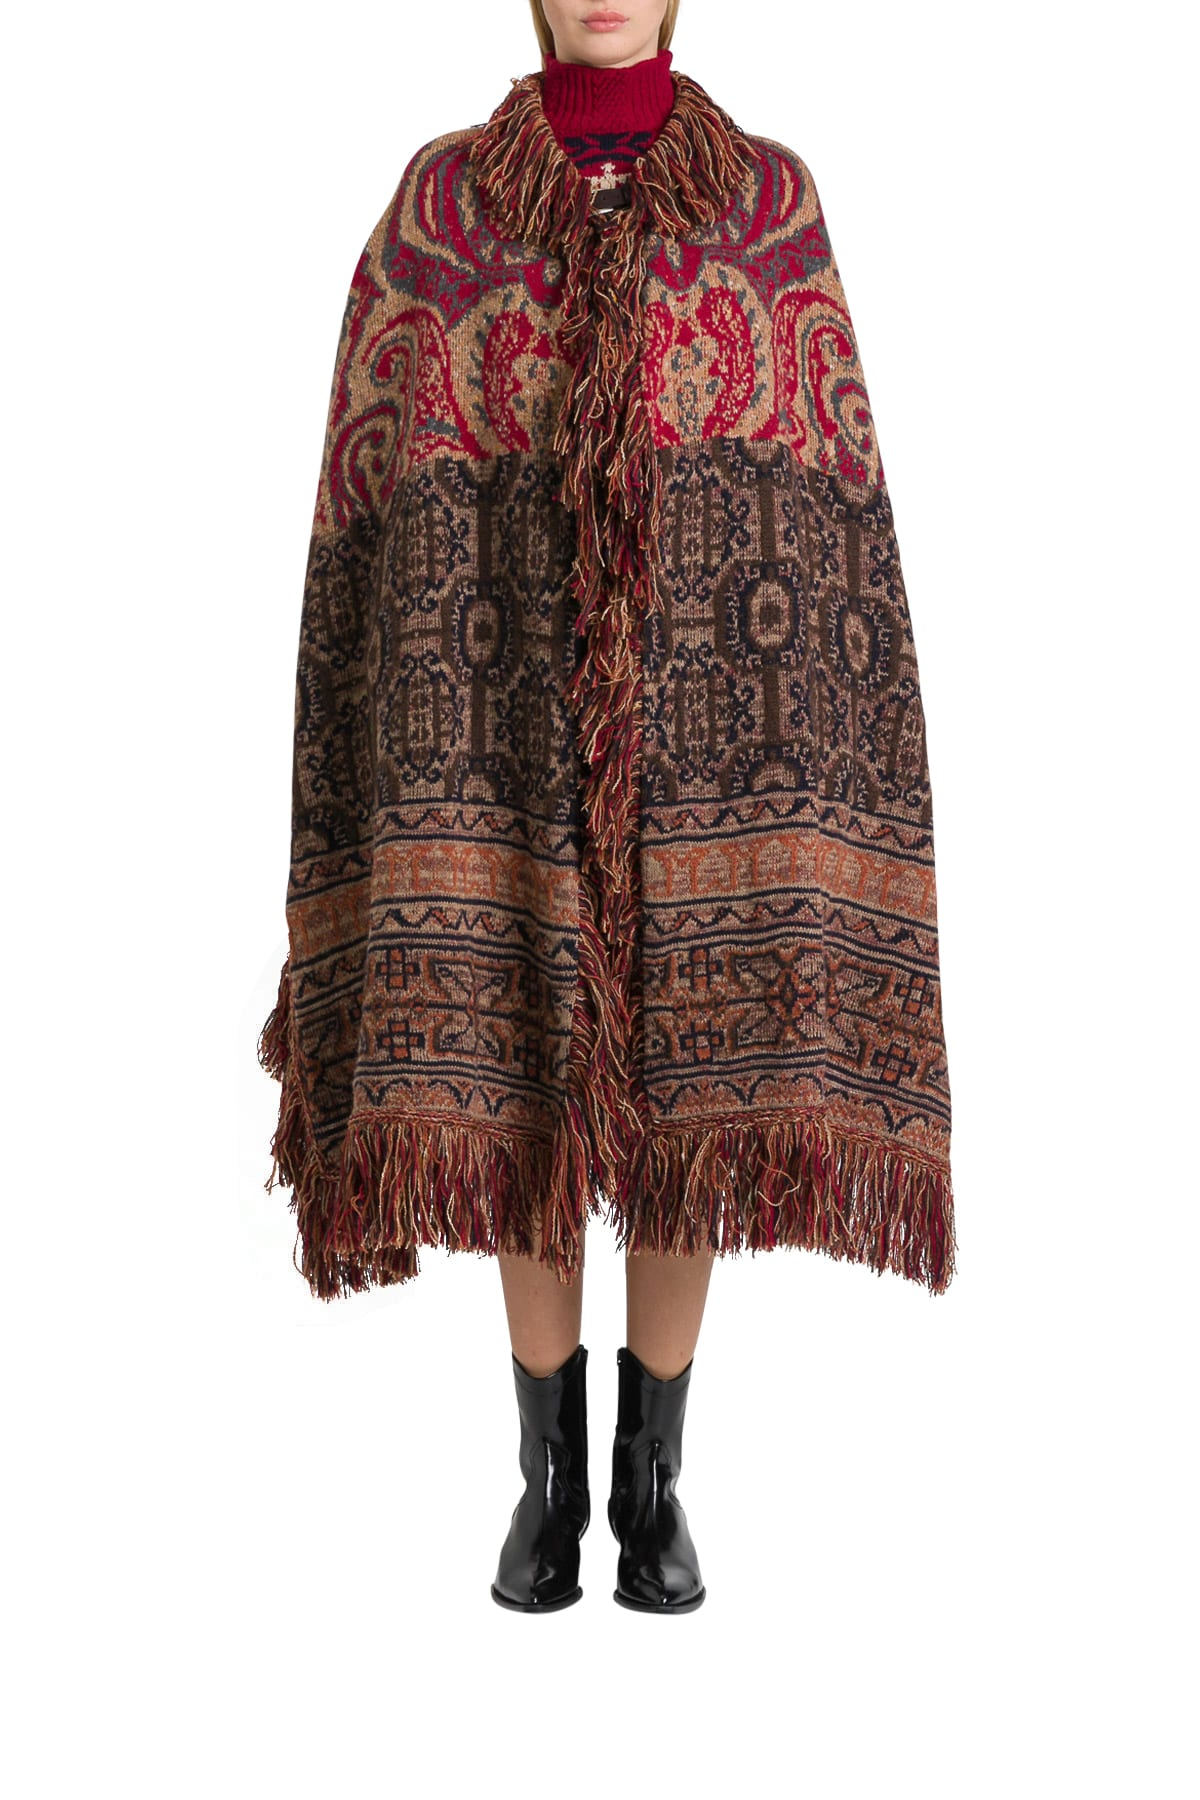 Photo of  Etro Torbay Poncho- shop Etro jackets online sales